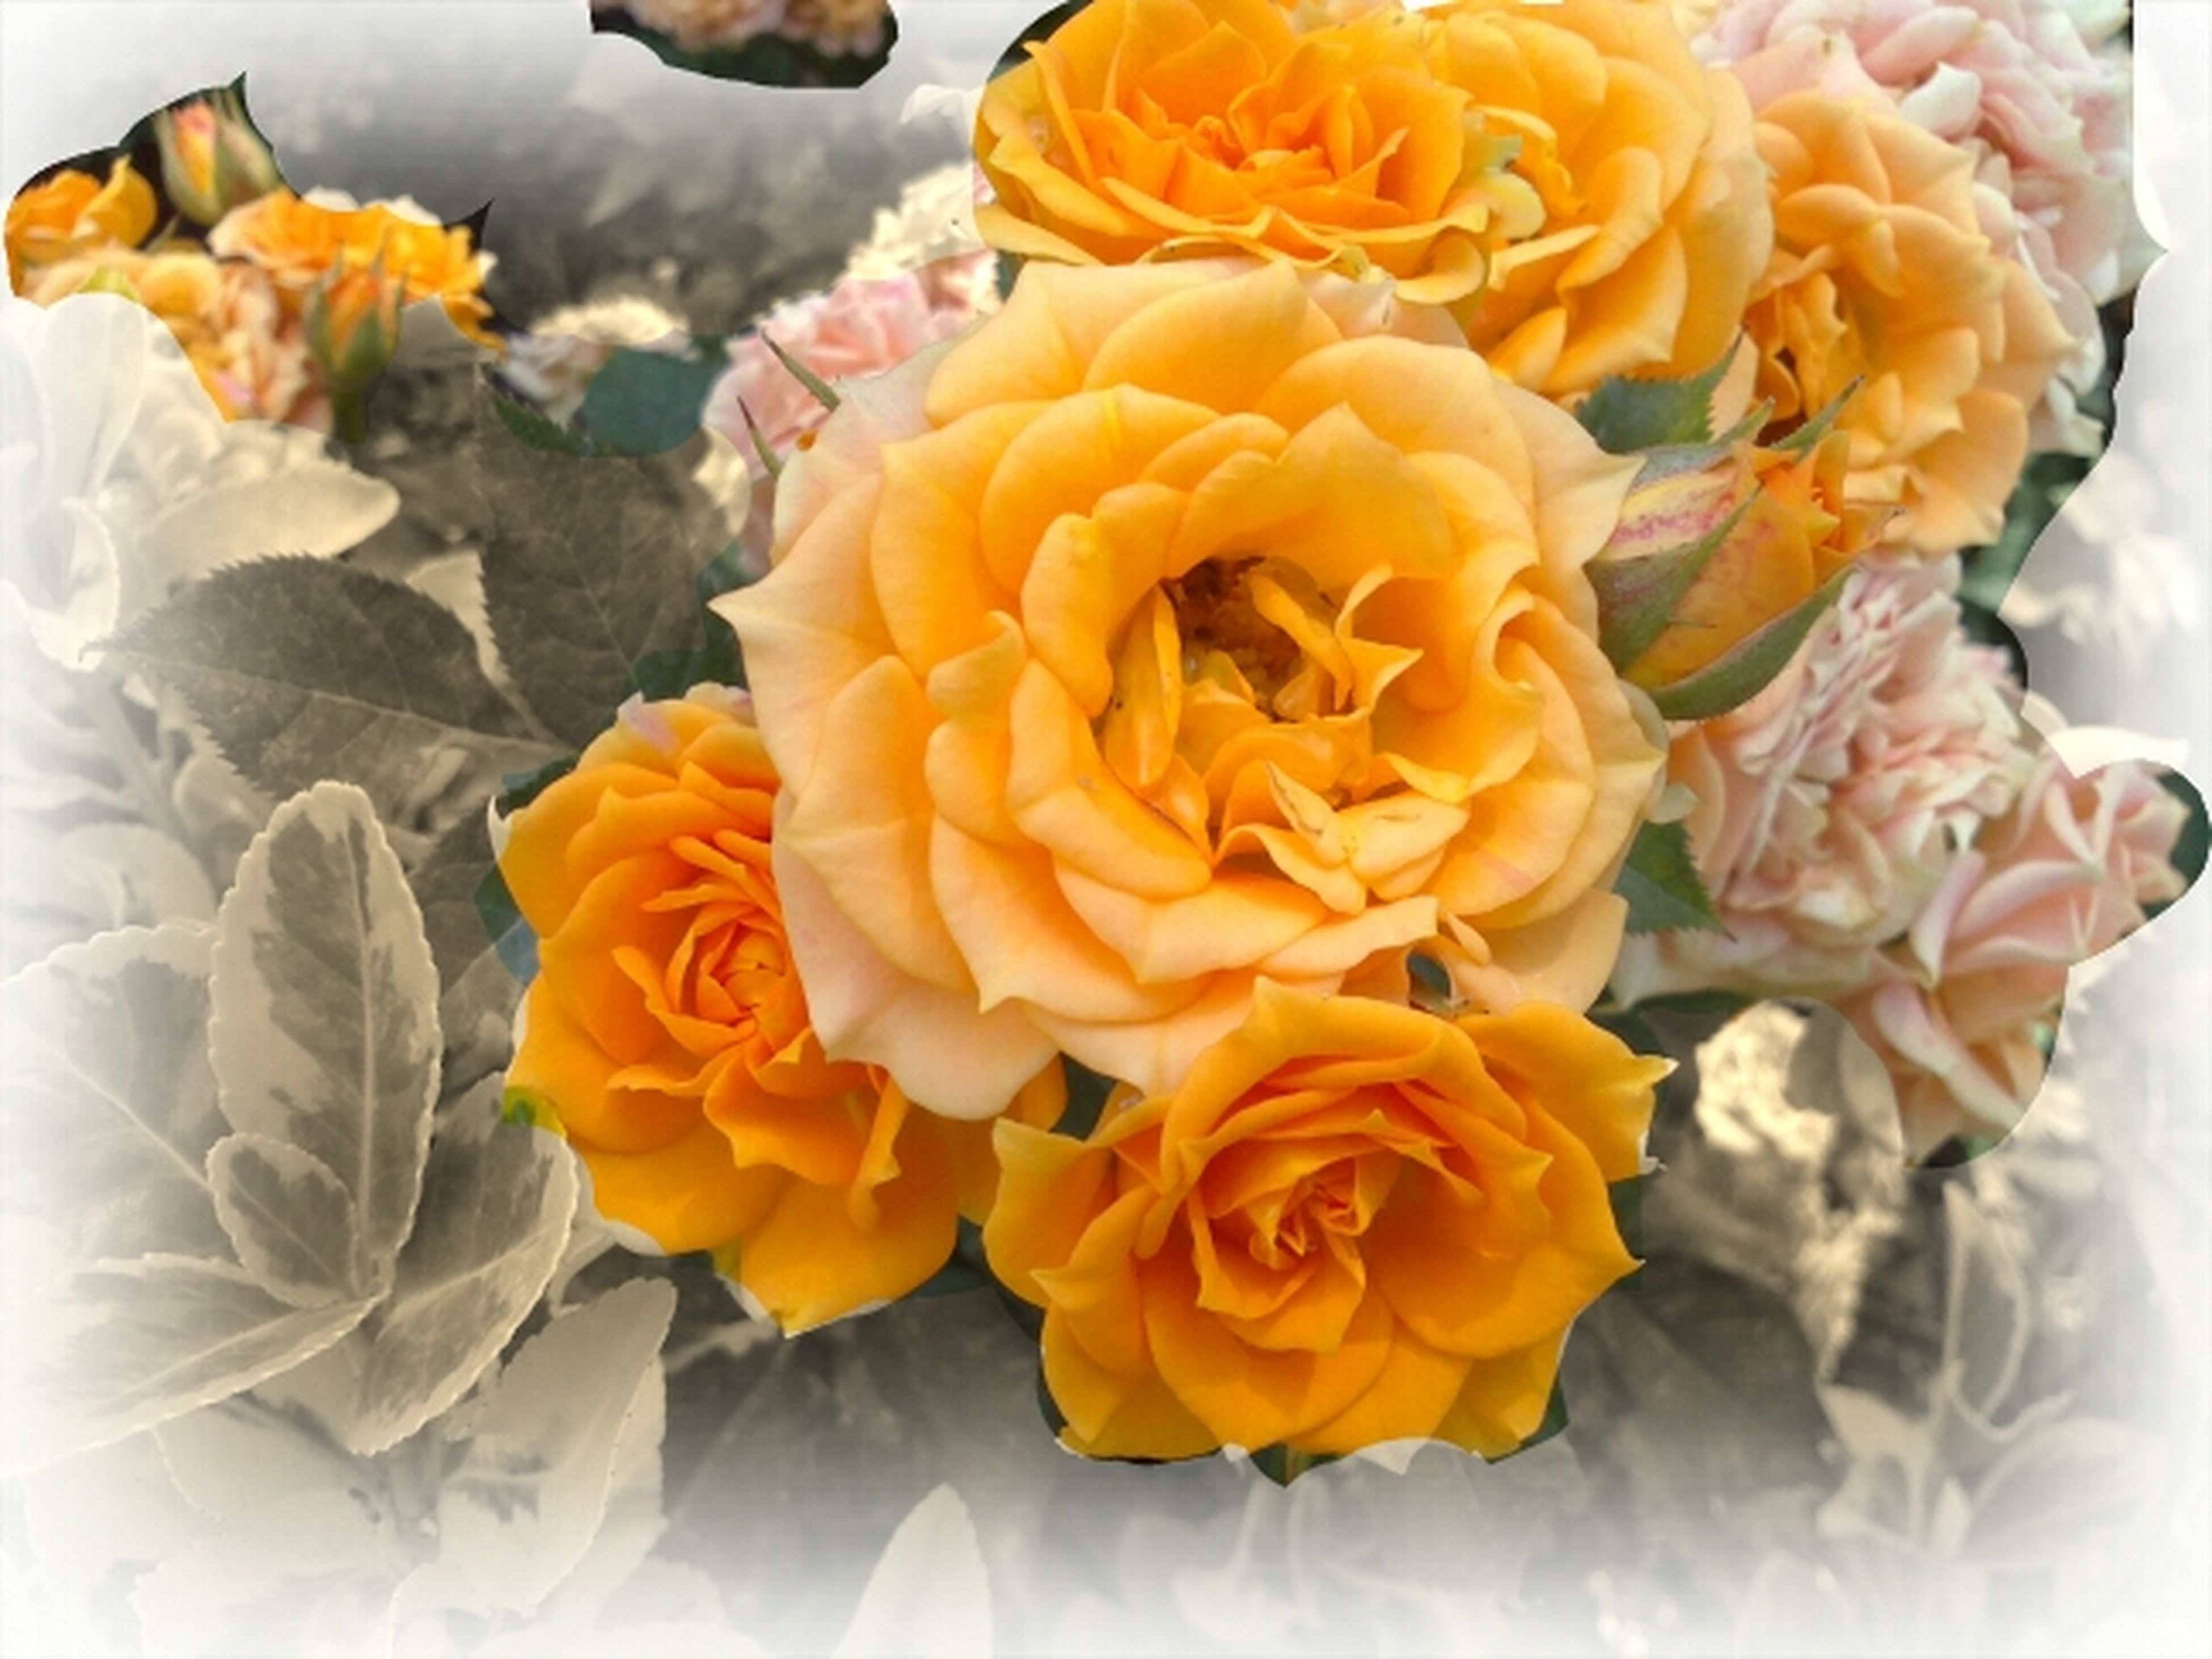 flower, petal, freshness, flower head, yellow, fragility, beauty in nature, indoors, rose - flower, close-up, high angle view, nature, bouquet, blooming, orange color, bunch of flowers, no people, multi colored, growth, plant